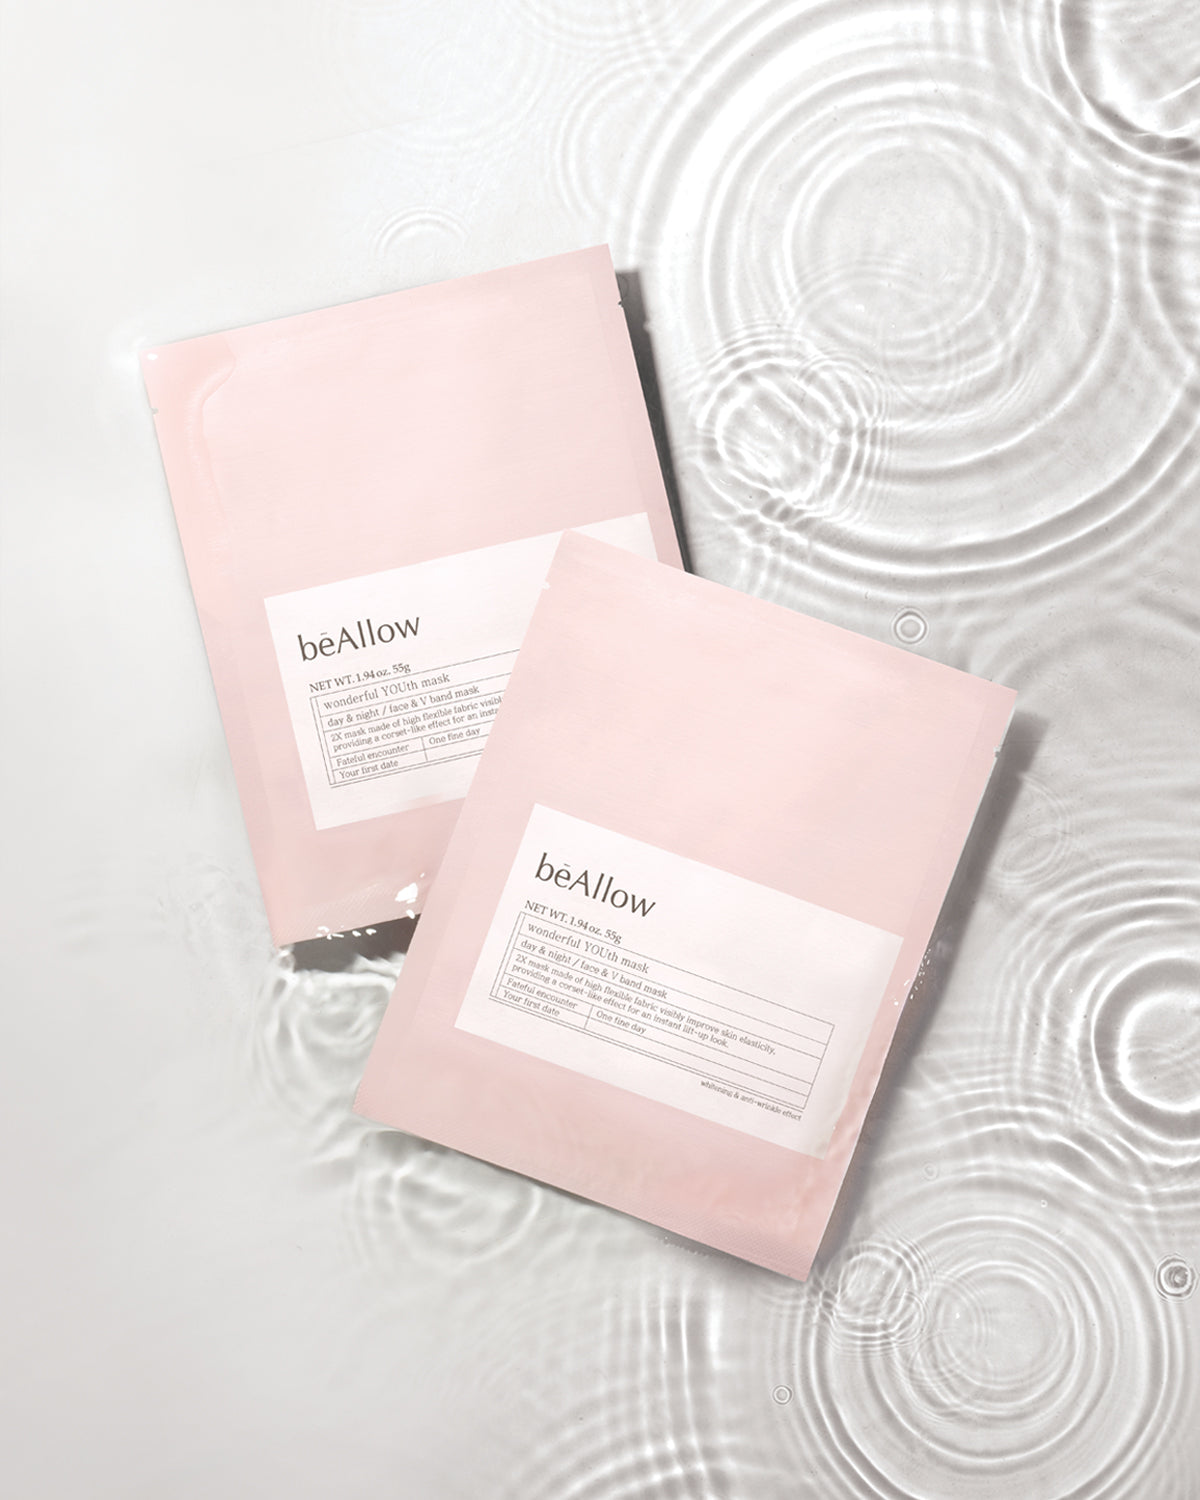 bē Allow Wonderful Youth Mask provides dual benefits of moisturizing and lifting. It provides hydration and moisture while V lifting sheet mask contours the chin to increase the look of elasticity and create a lifted appearance.